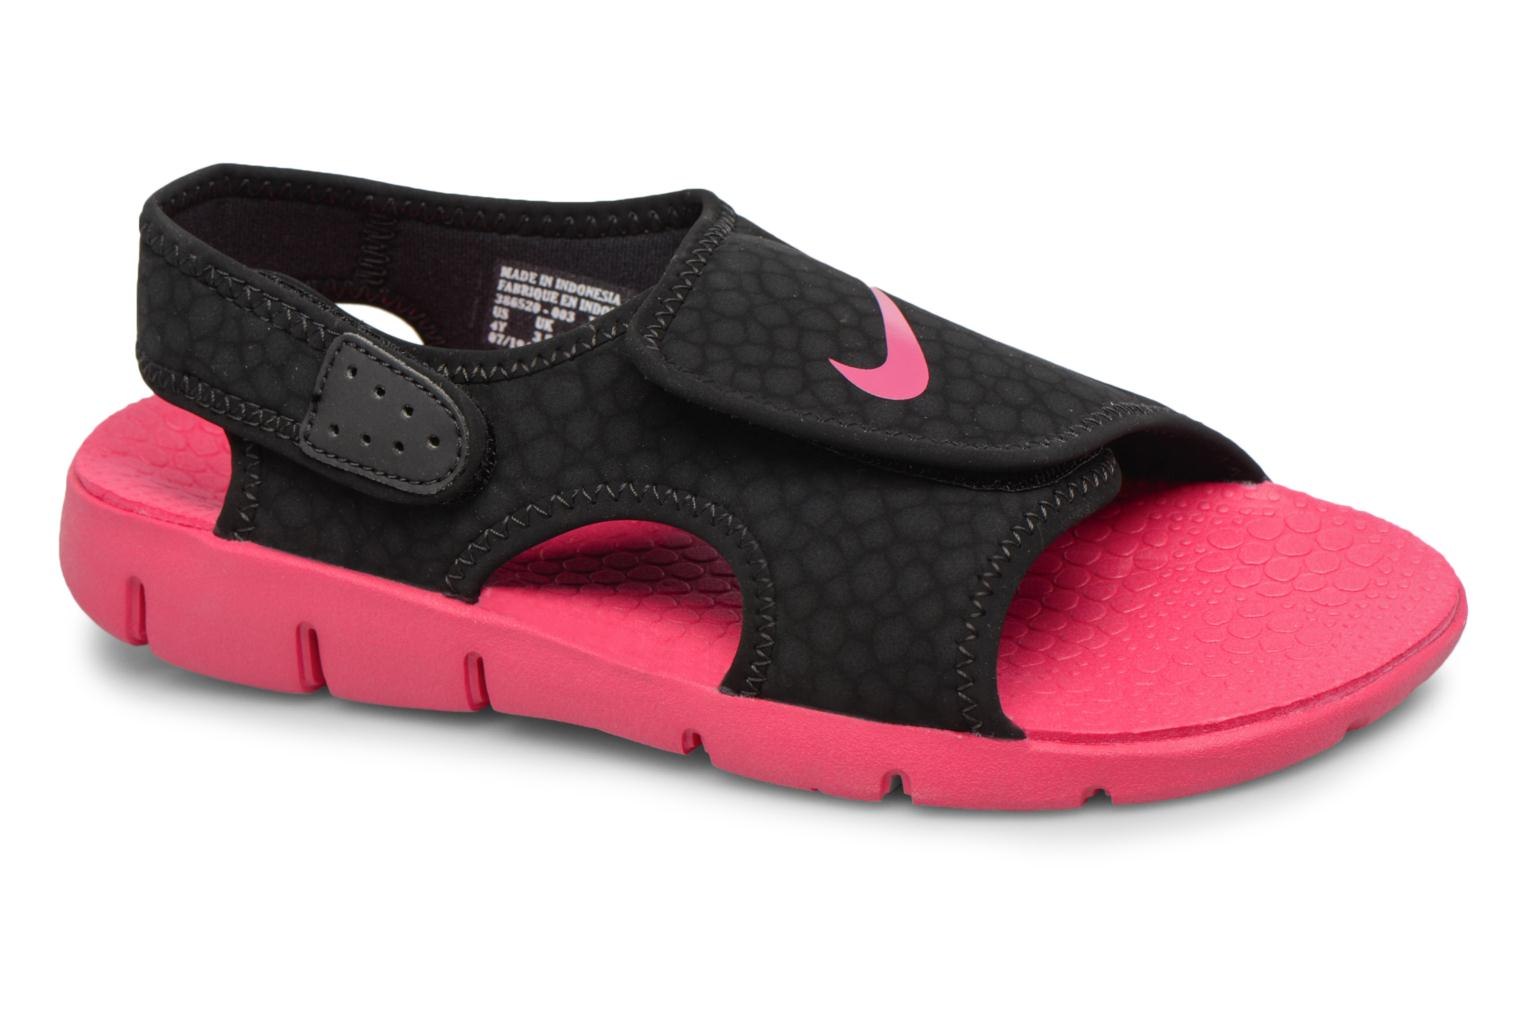 Nike - Kinder - Nike Sunray Adjust 4 (Gs/Ps) - Sandalen - schwarz